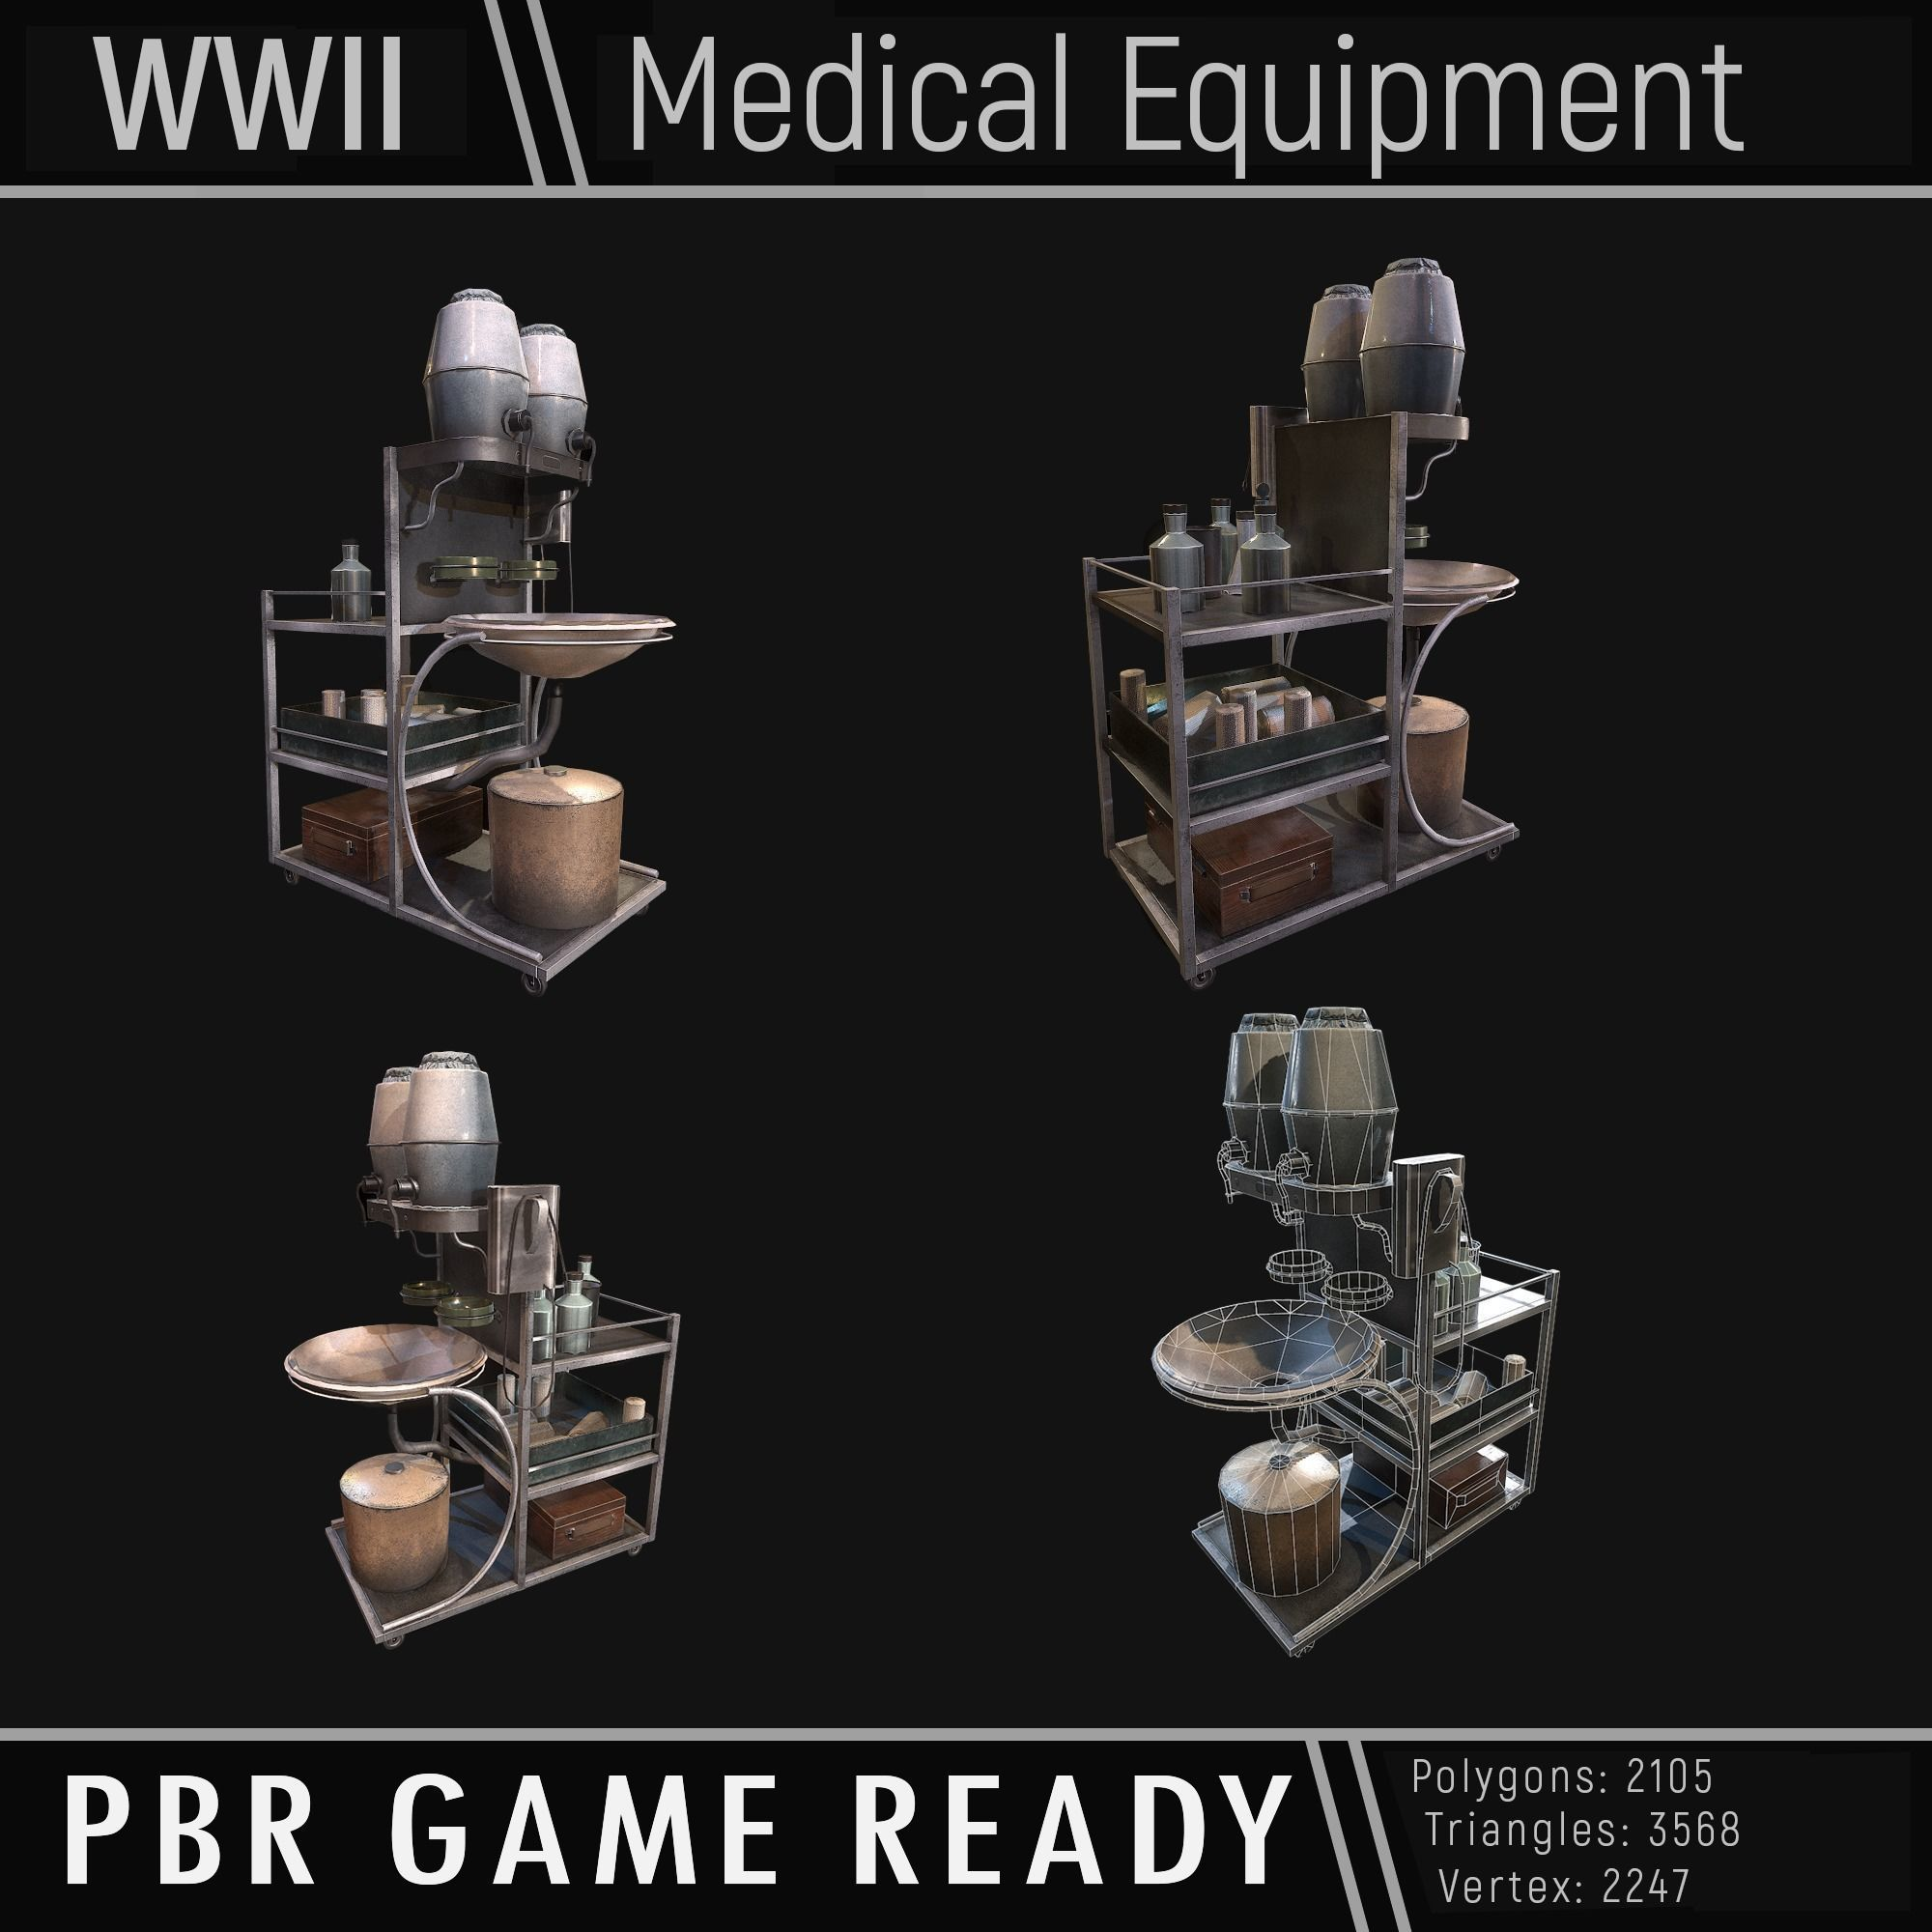 Medical Equipment WWII